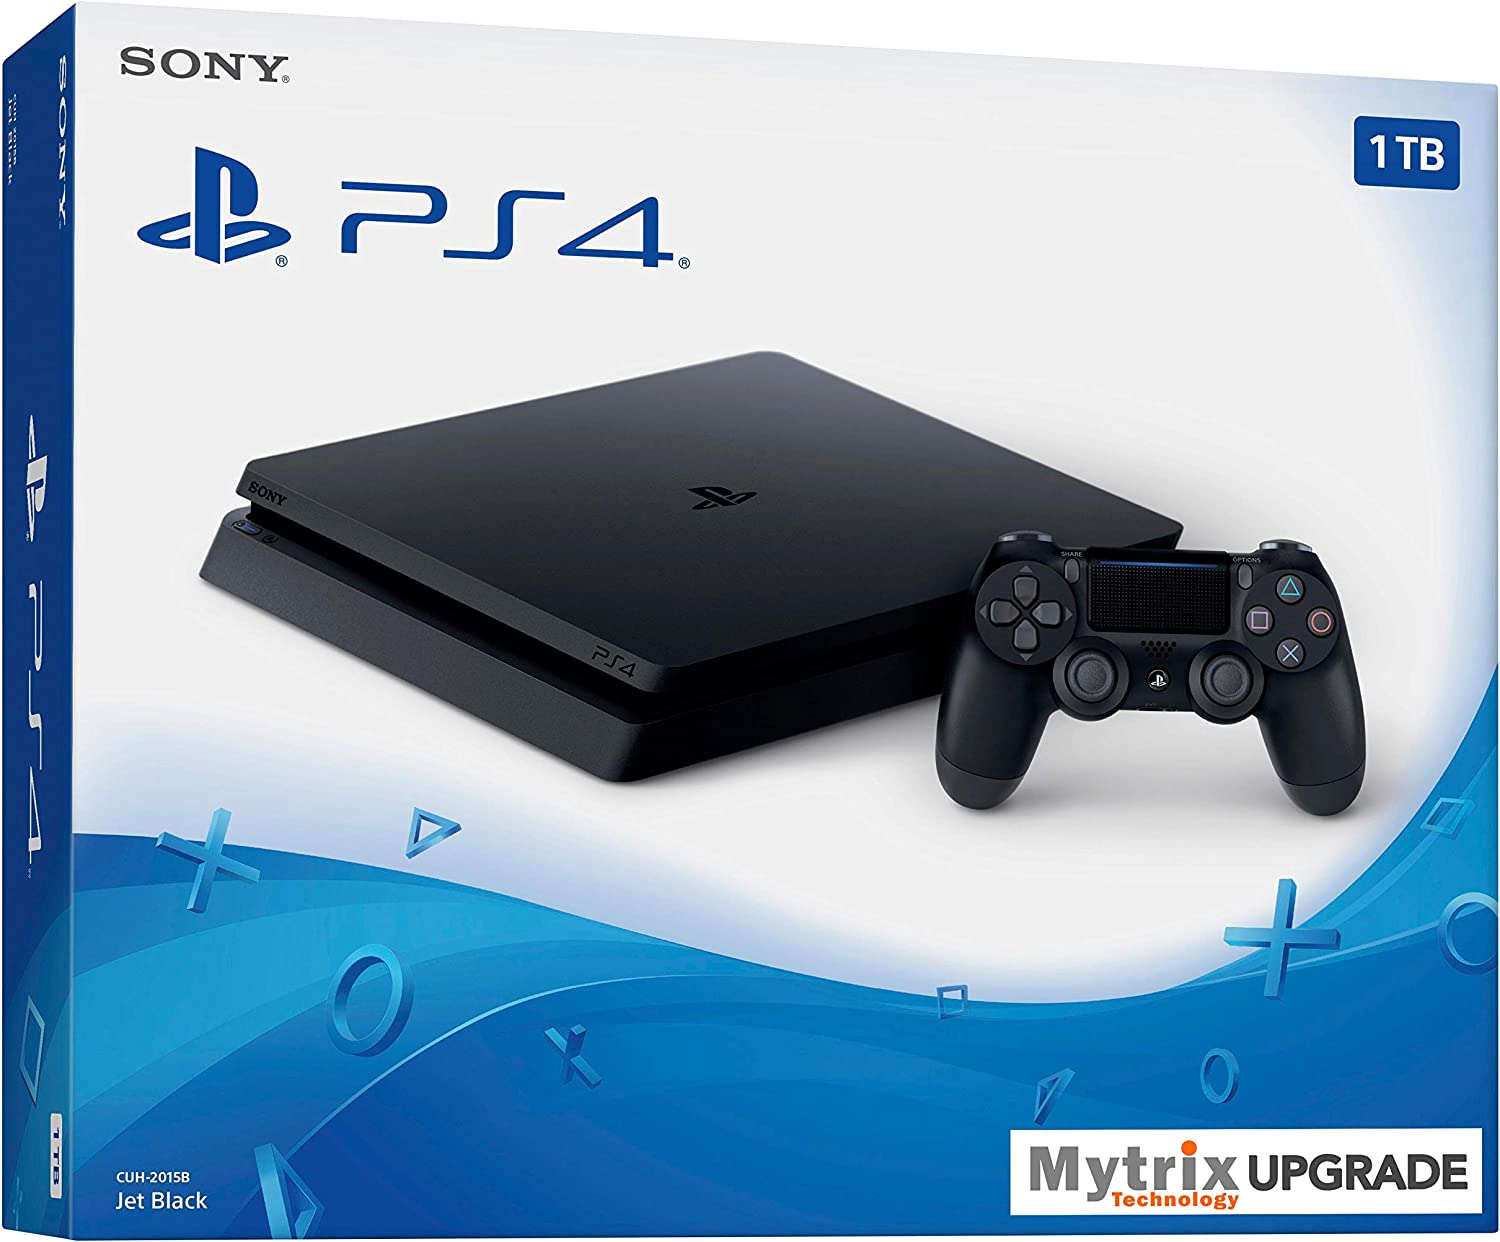 Mytrix Playstation 4 Slim 1TB SSD Console with DualShock 4 Wireless Controller Bundle, Playstation Enhanced with 1TB Solid State Drive [Video Game] [Video Game] [Video Game] [Video Game] [Video Game]